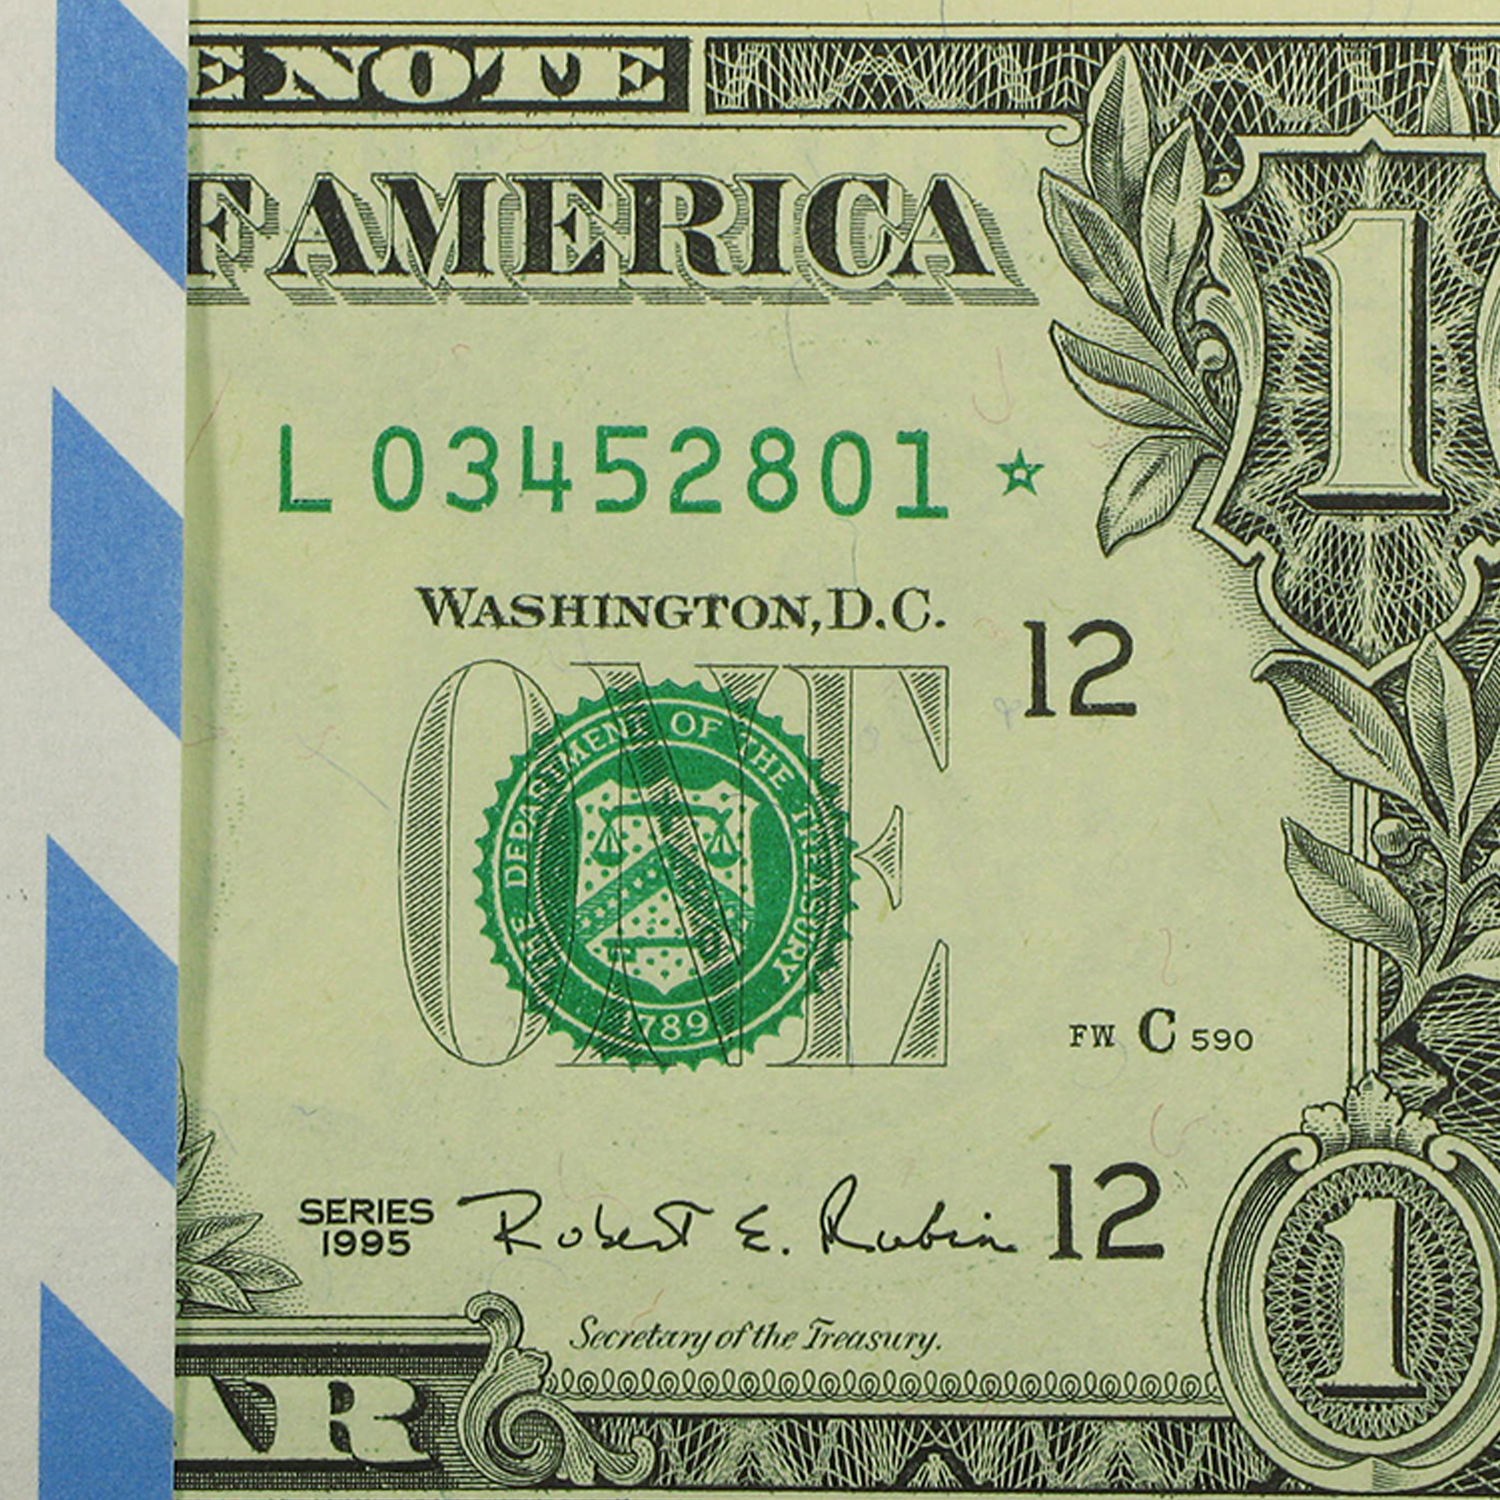 1995* (L-San Francisco) $1.00 FRN CU (Consecutive 100 Star Notes)